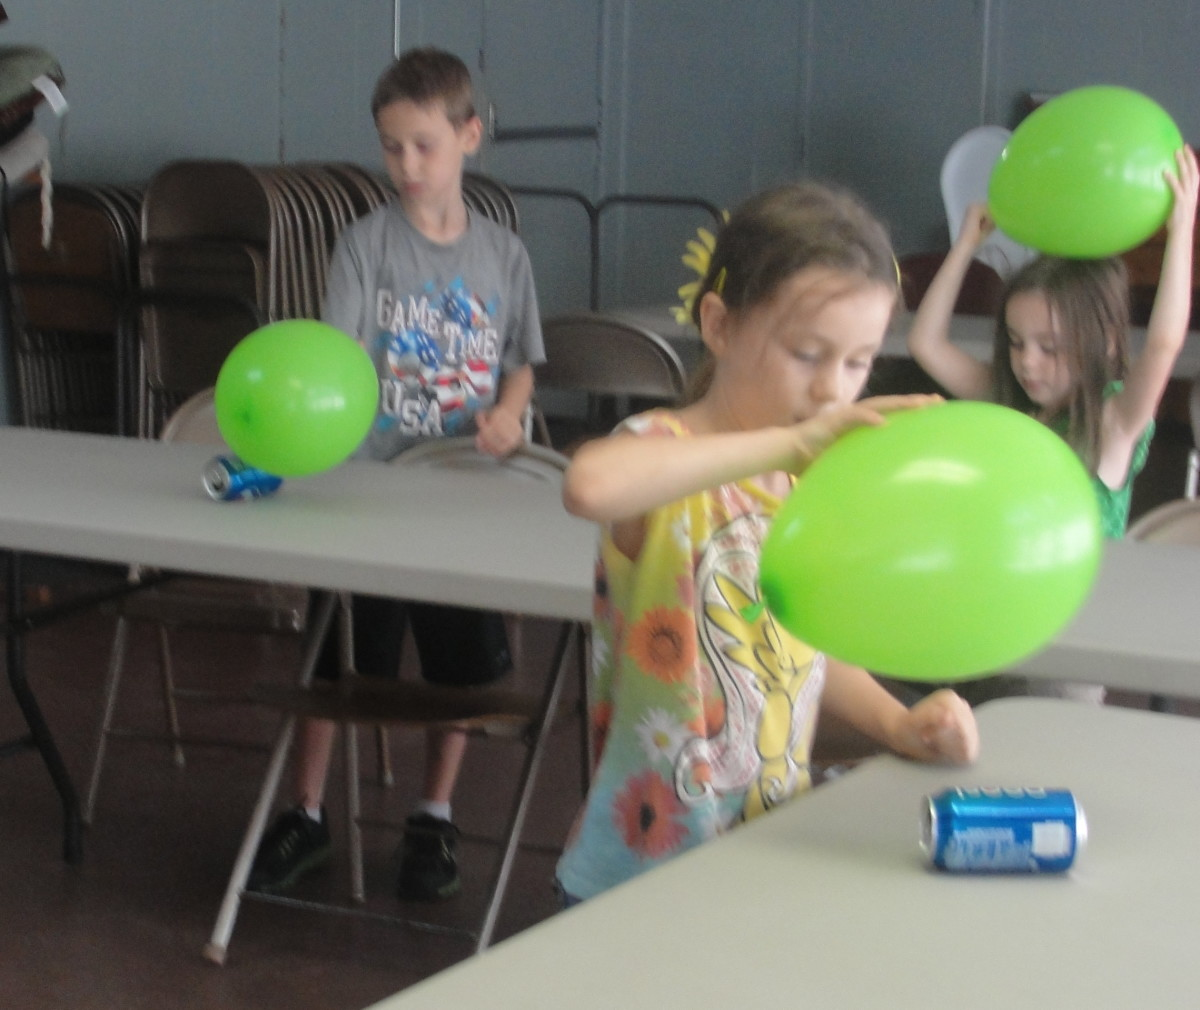 Rolling a can using static electricity